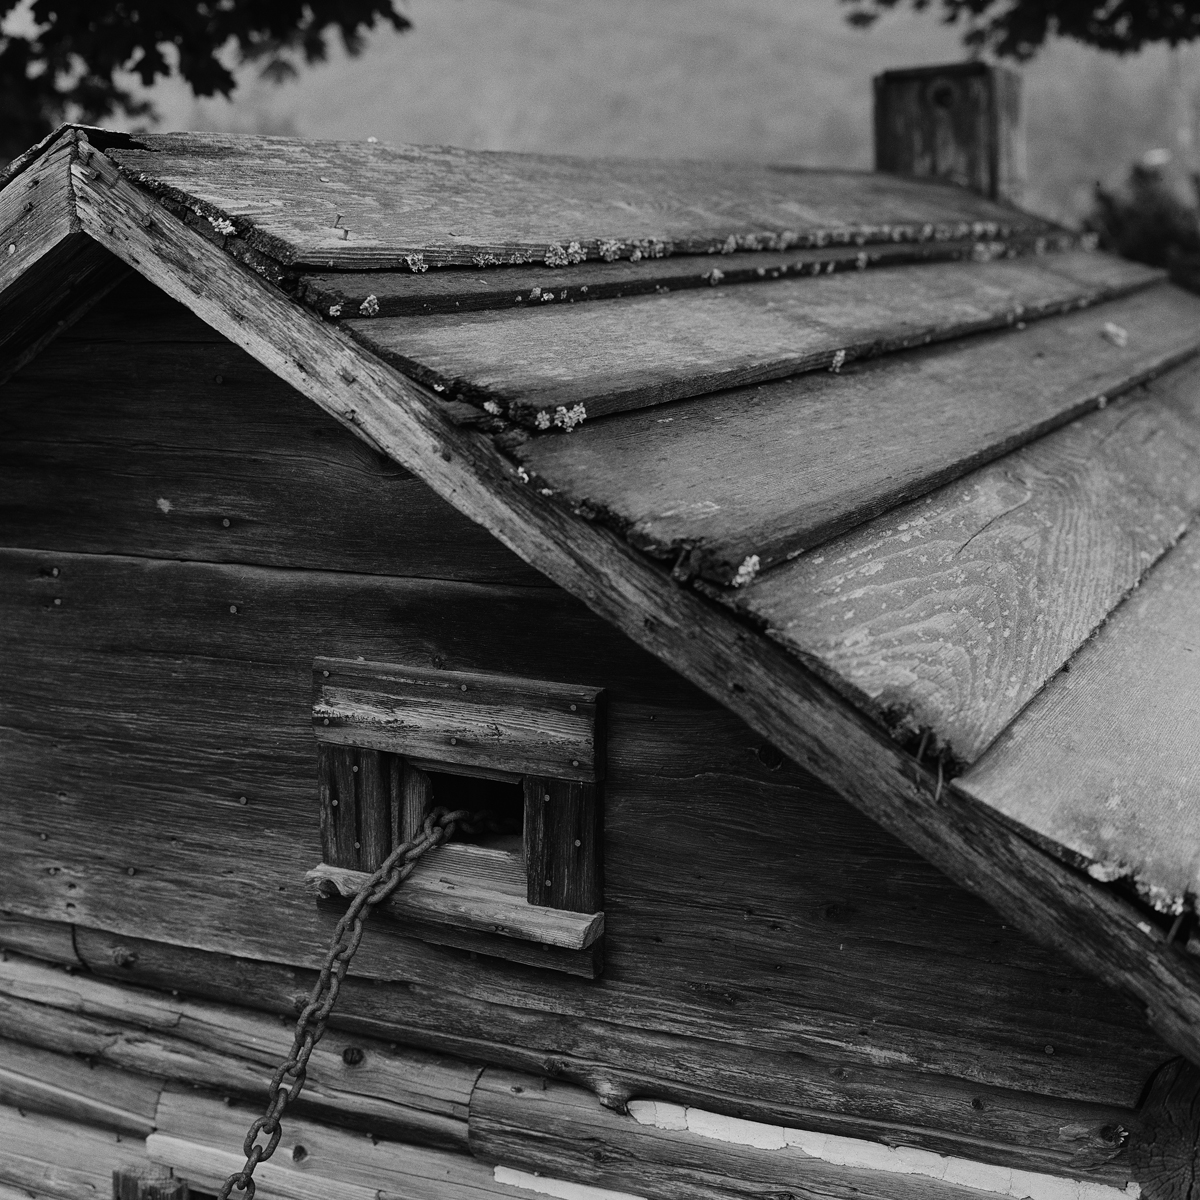 2. Early Cabin Replica and Chain, Elizabethtown, NY. 1999. Toned Gelatin Silver Print.